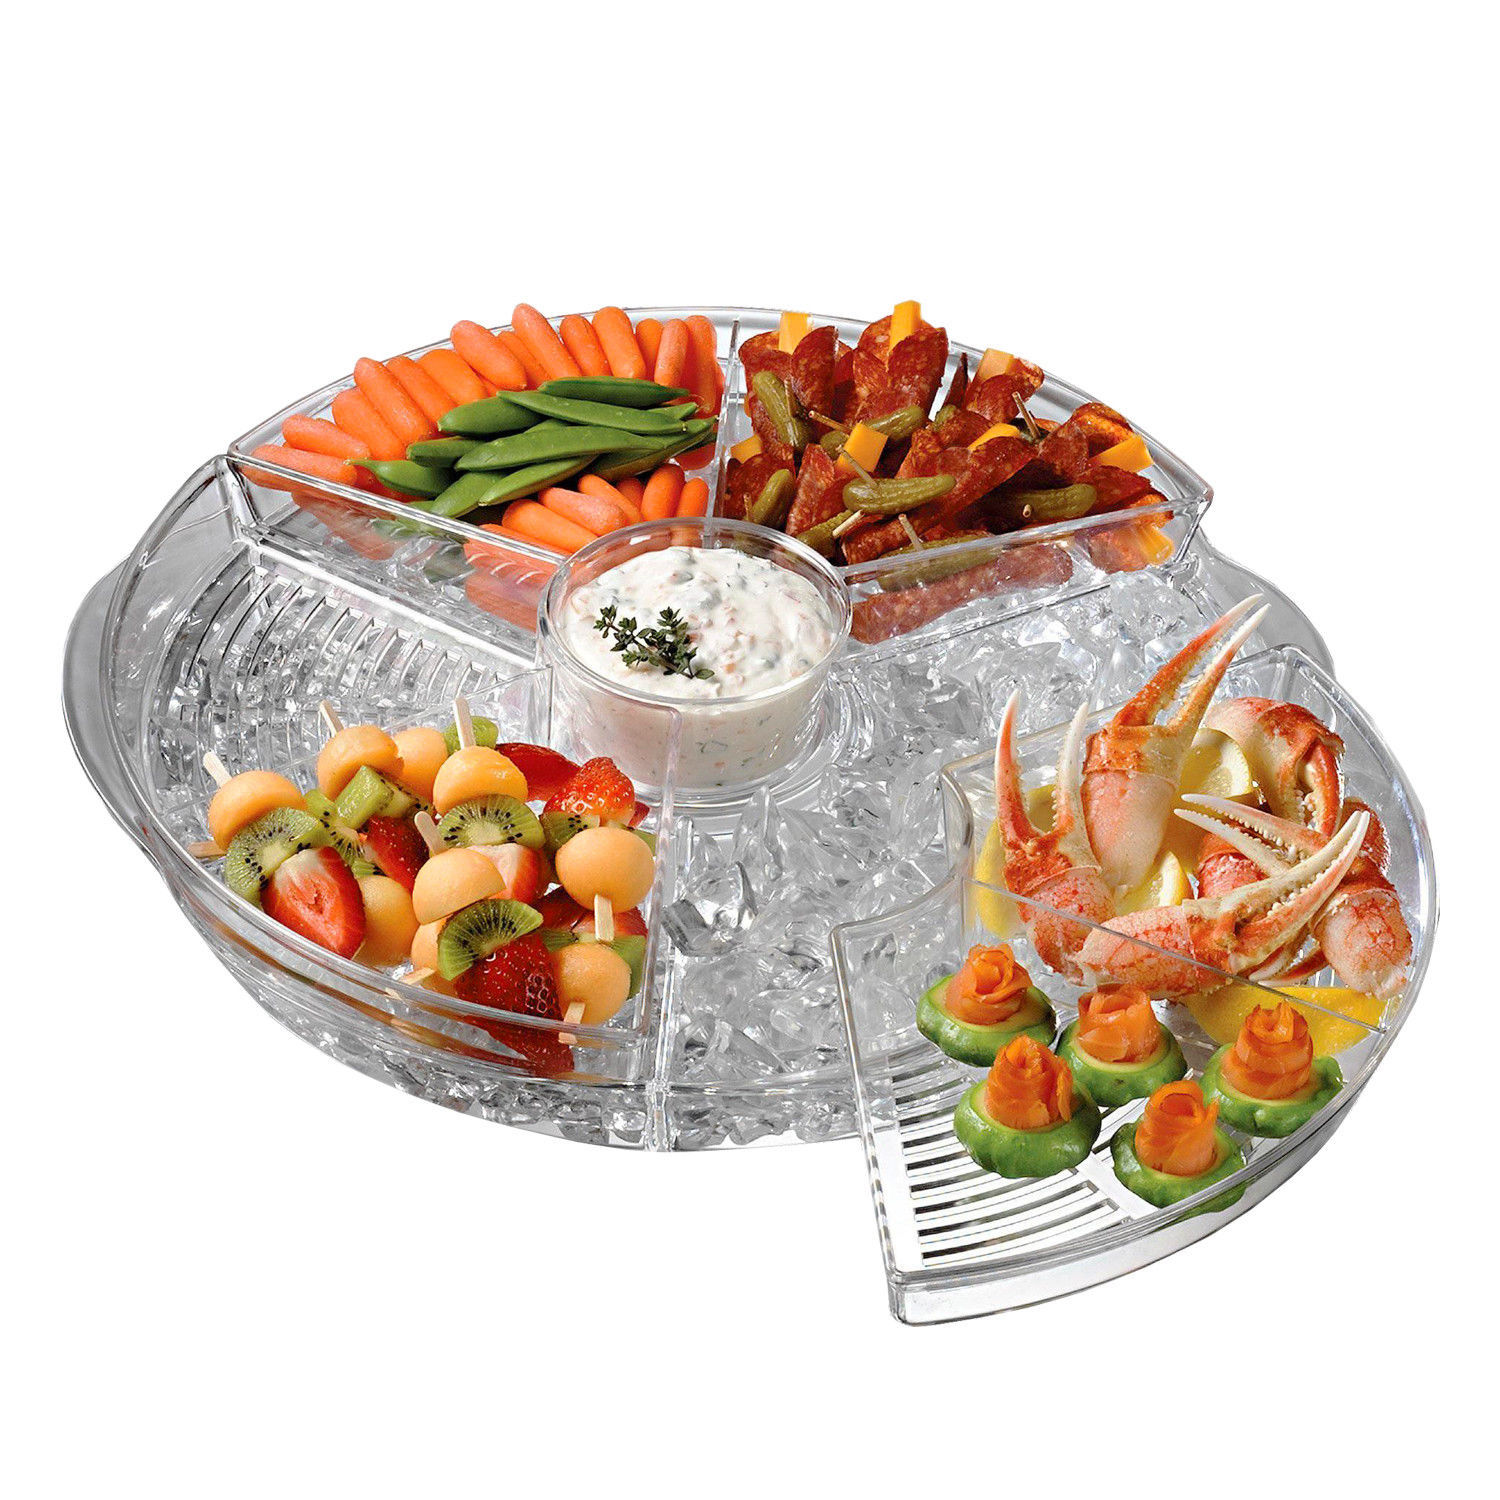 Chilly and Icy Appetizer Serving Tray Nifty Plastic Party Tray